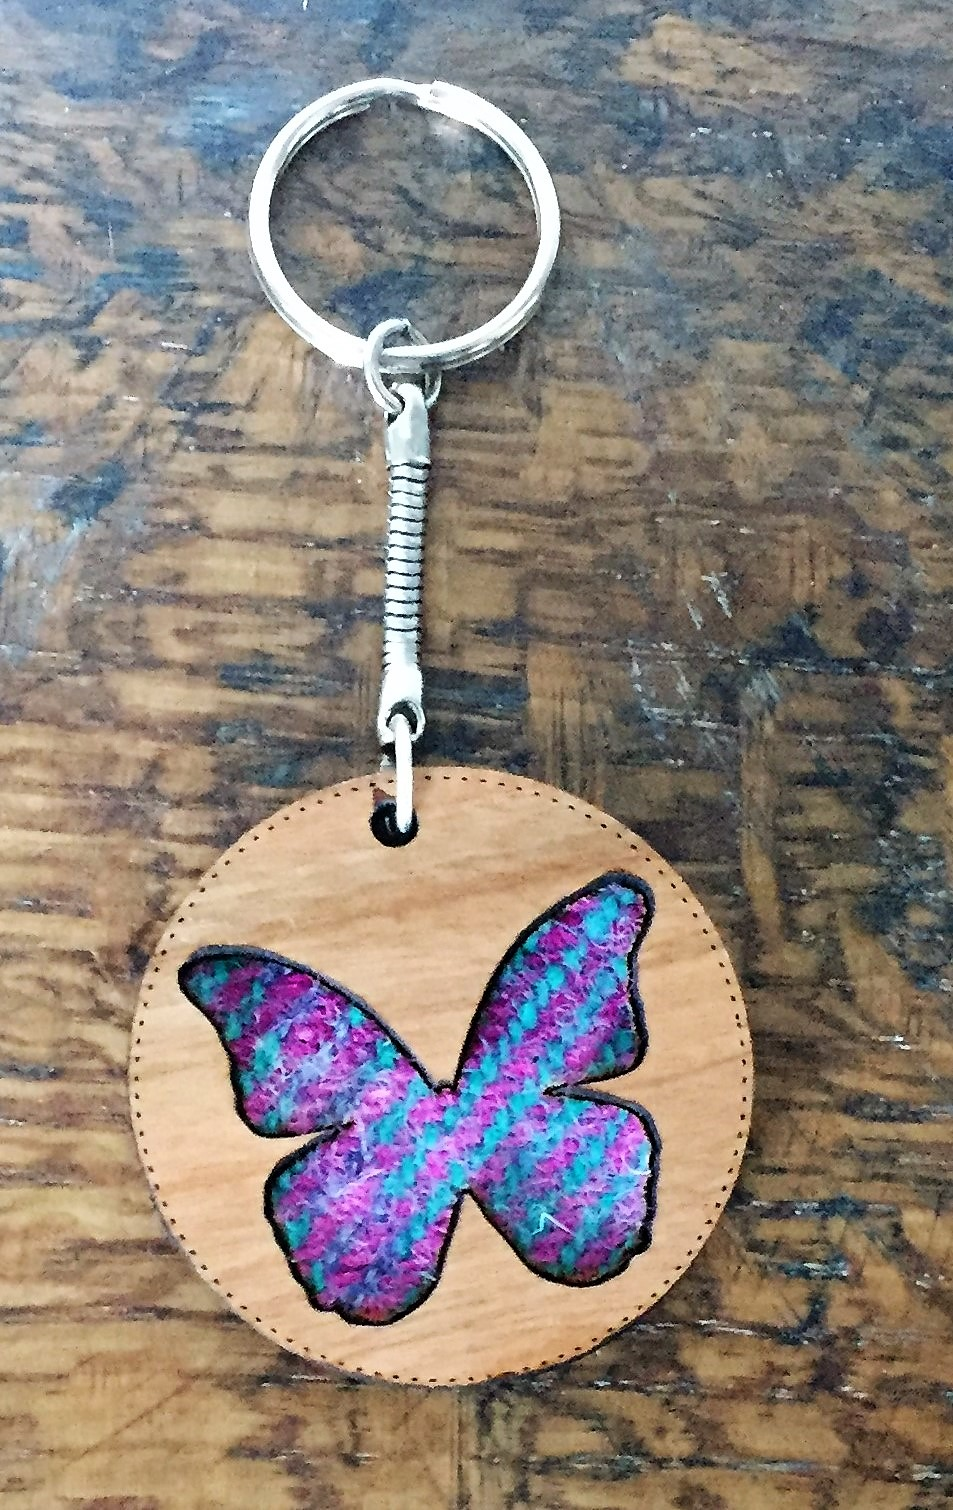 Wooden Key Ring with Harris Tweed - Butterfly Key Ring